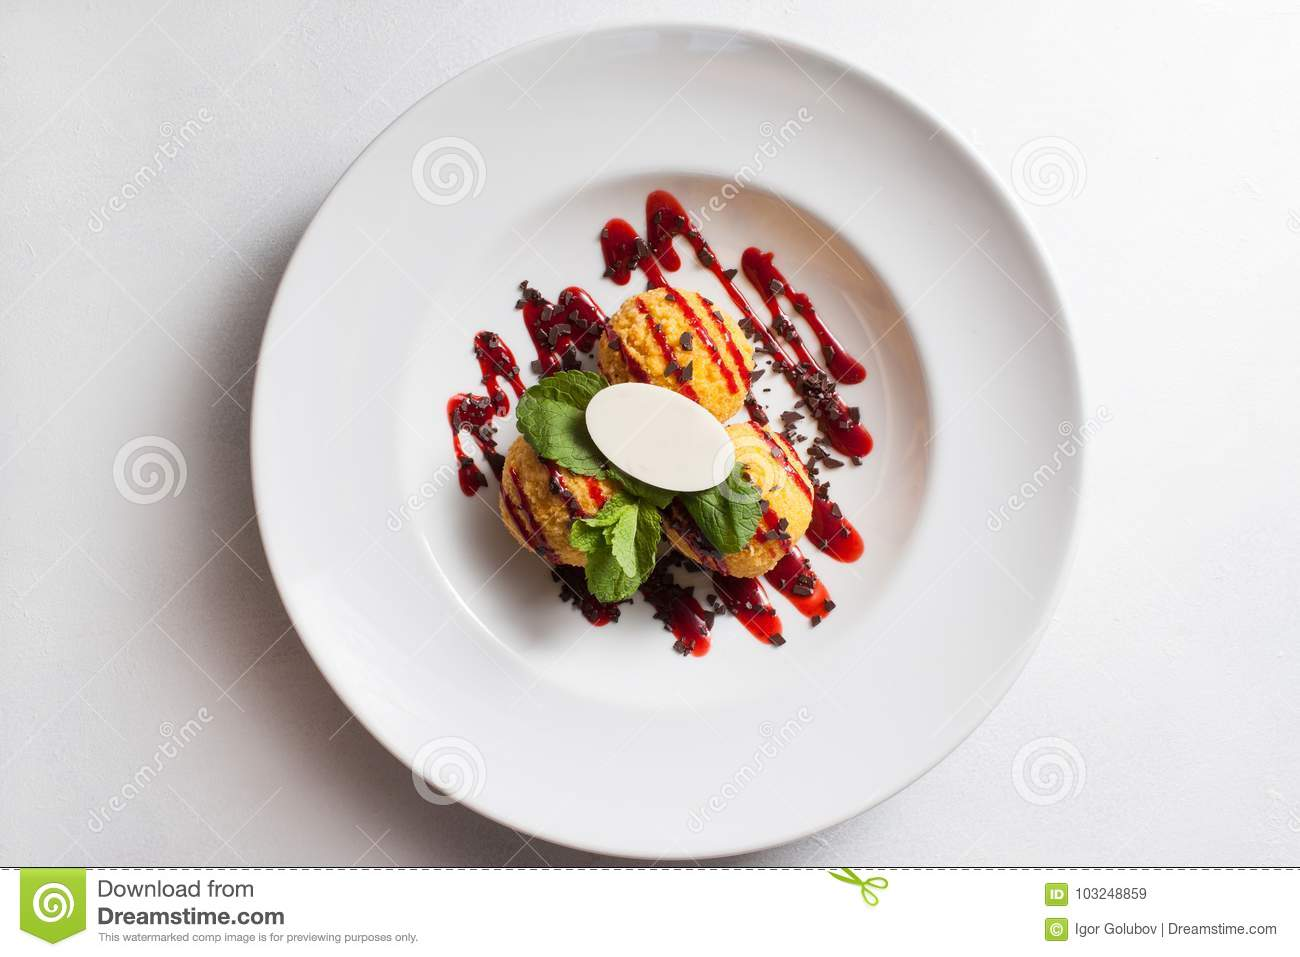 Food Photo Restaurant Meal Dessert Recipe Concept Stock Image Image Of Served Dining 103248859